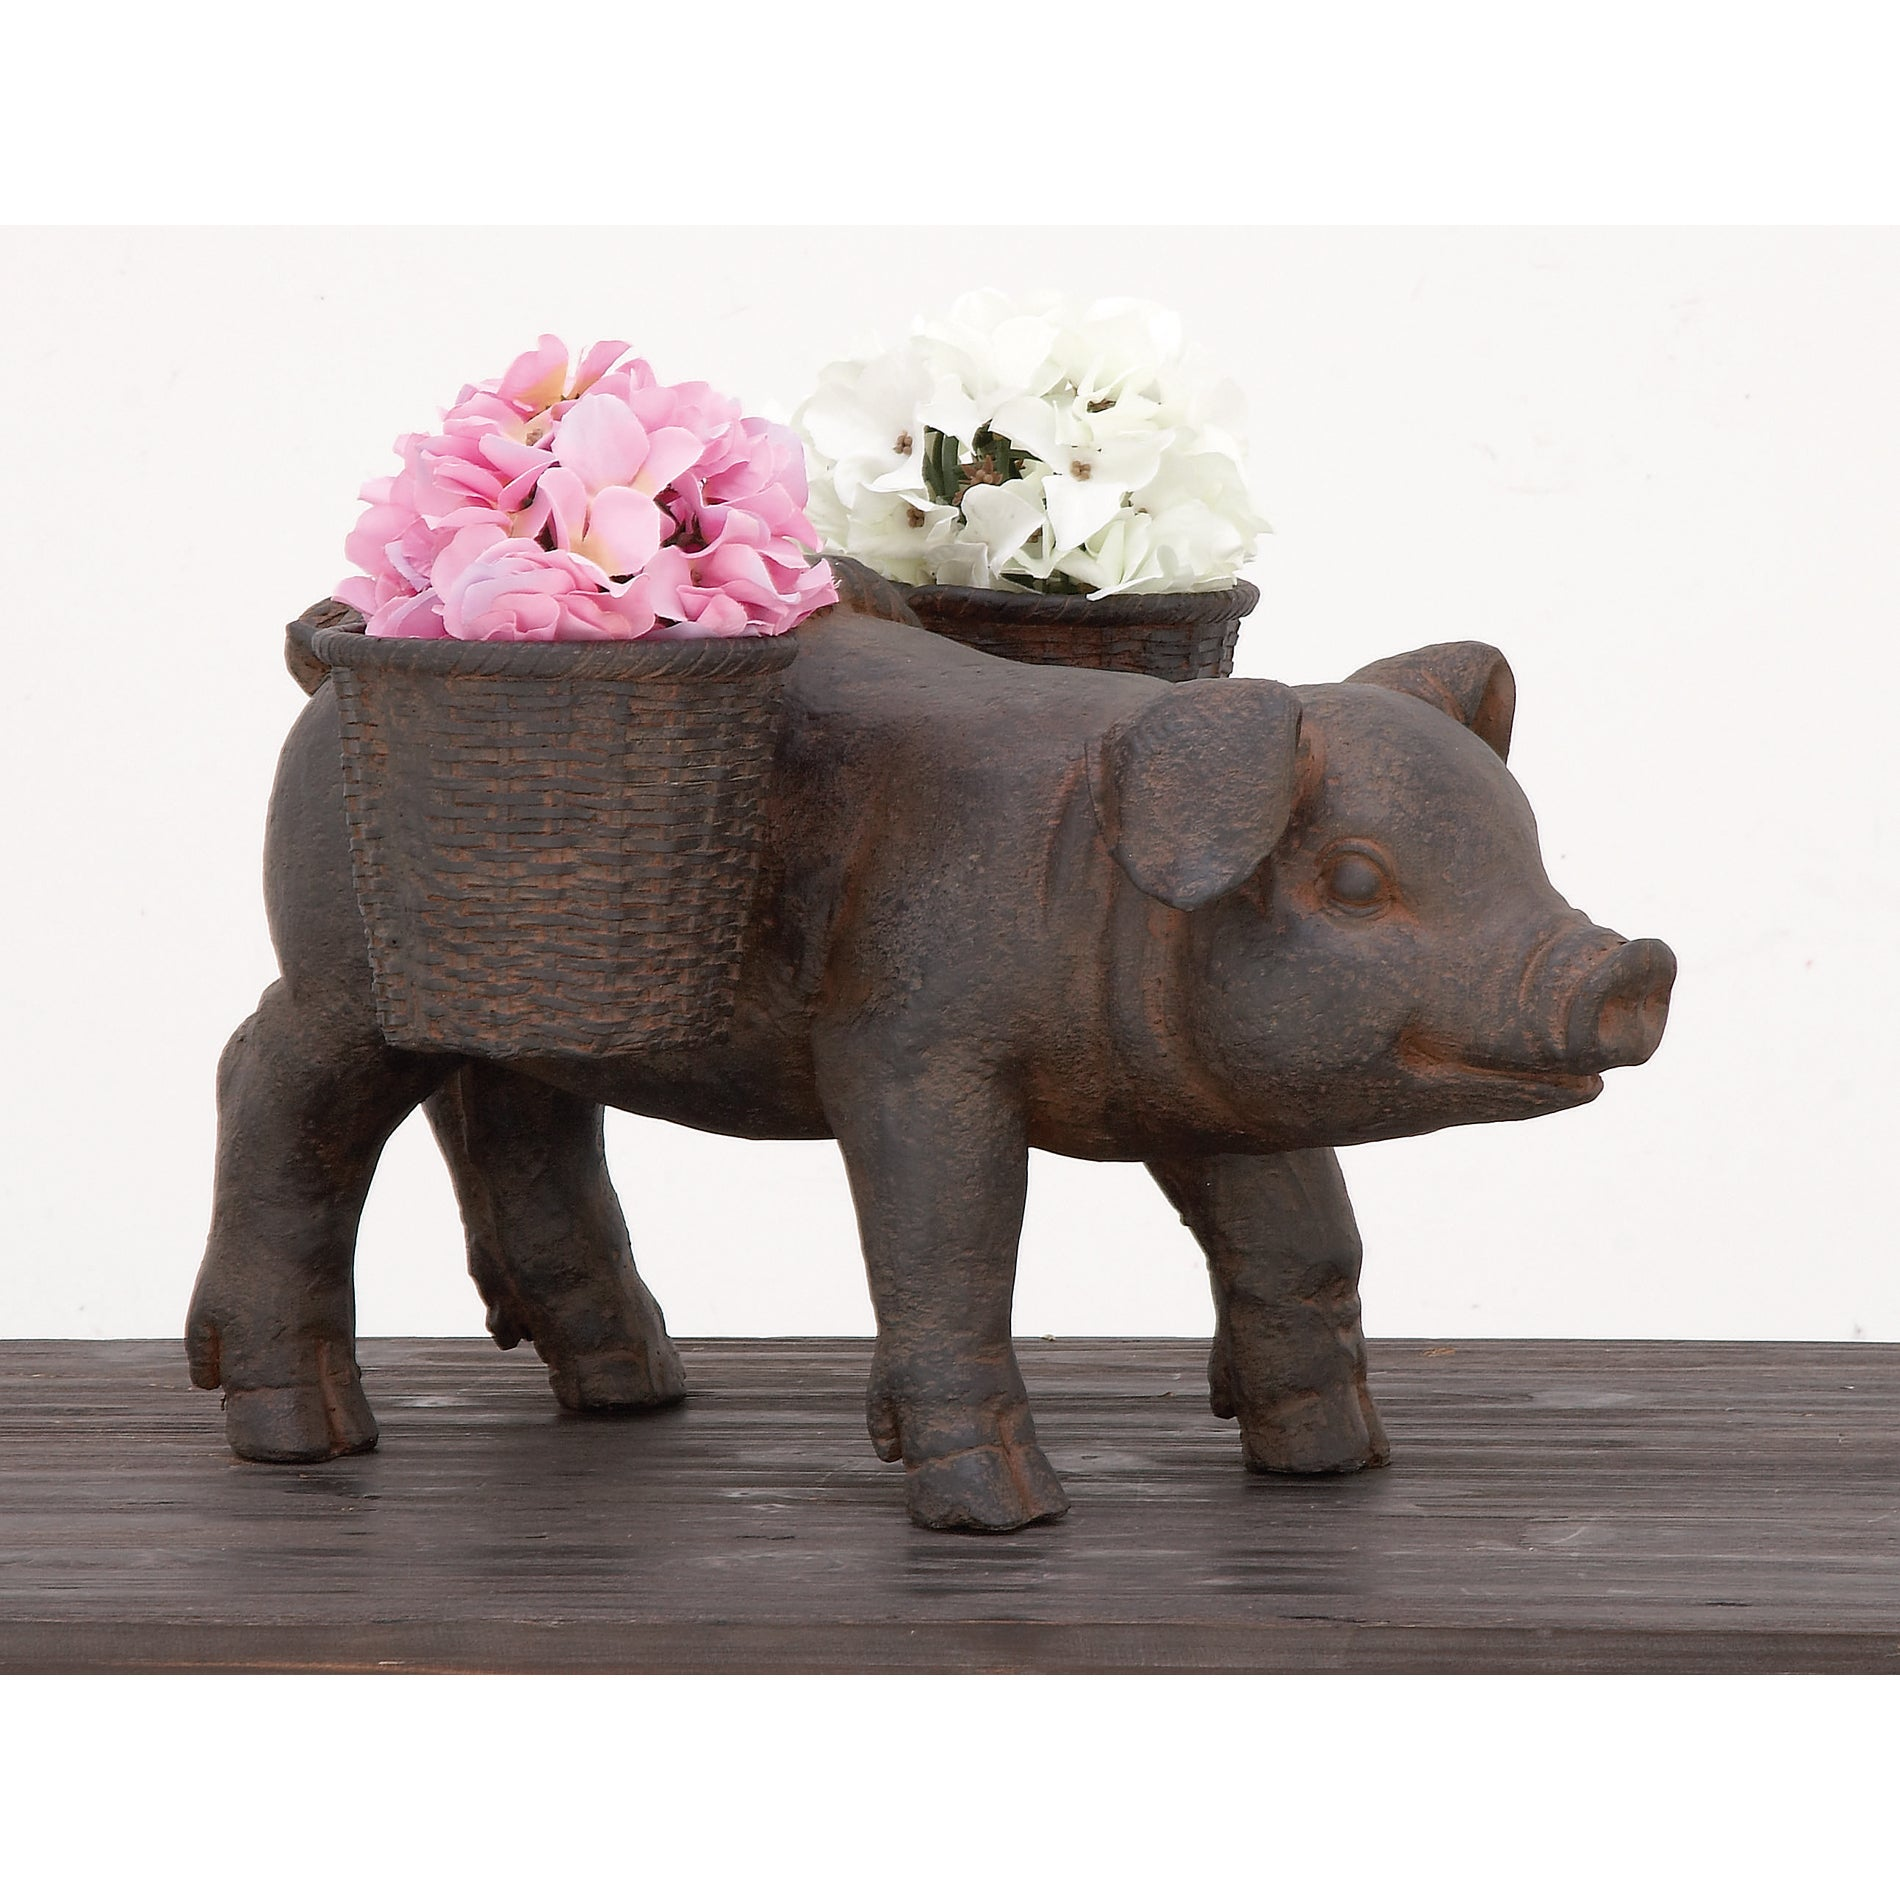 urban designs happy piggy brown cast stone planter garden decor | ebay